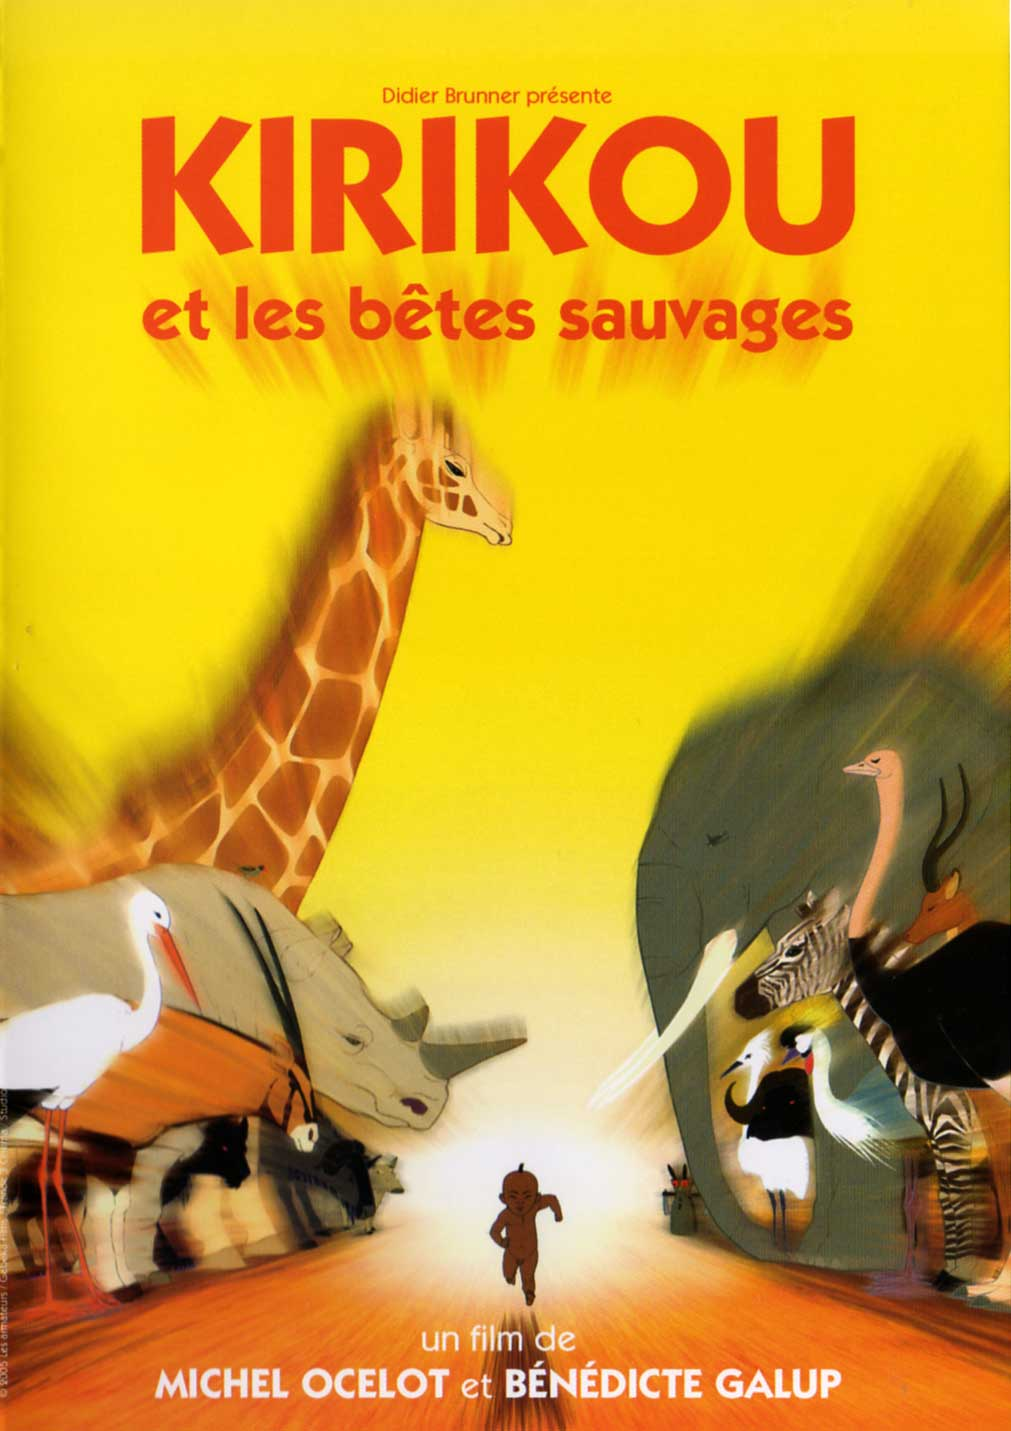 Kirikou et les btes sauvages (2005)